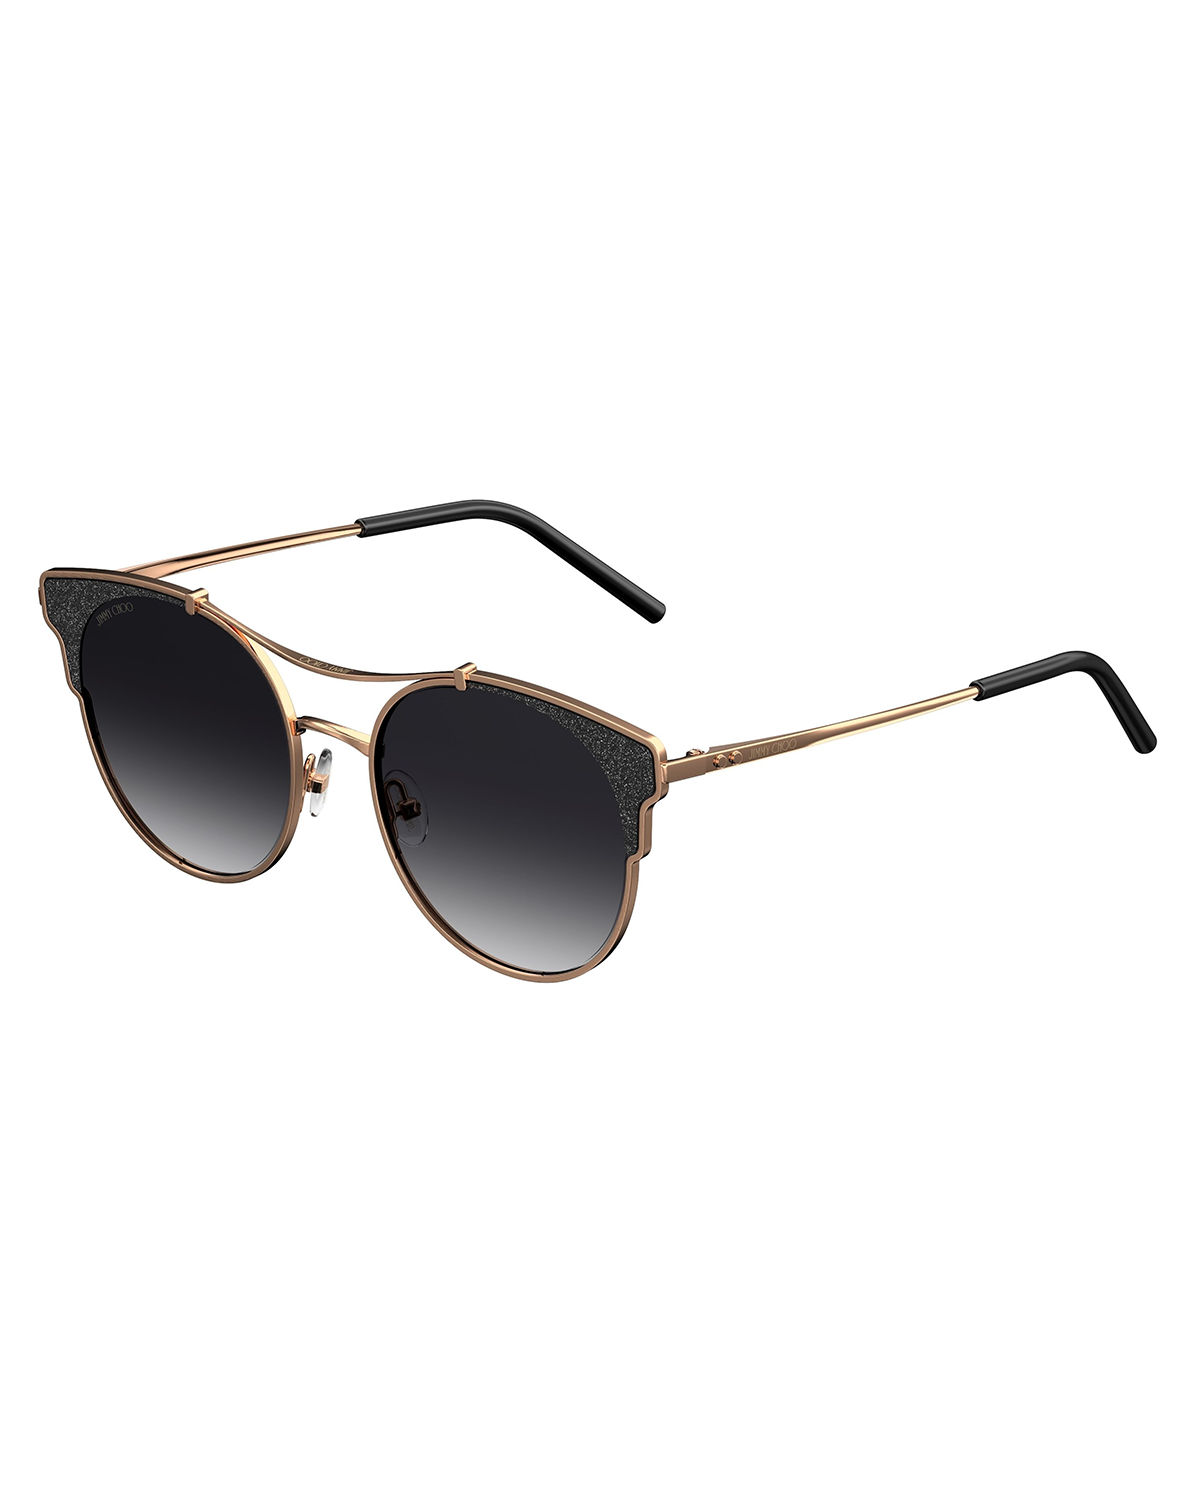 Lues Round Metal Sunglasses